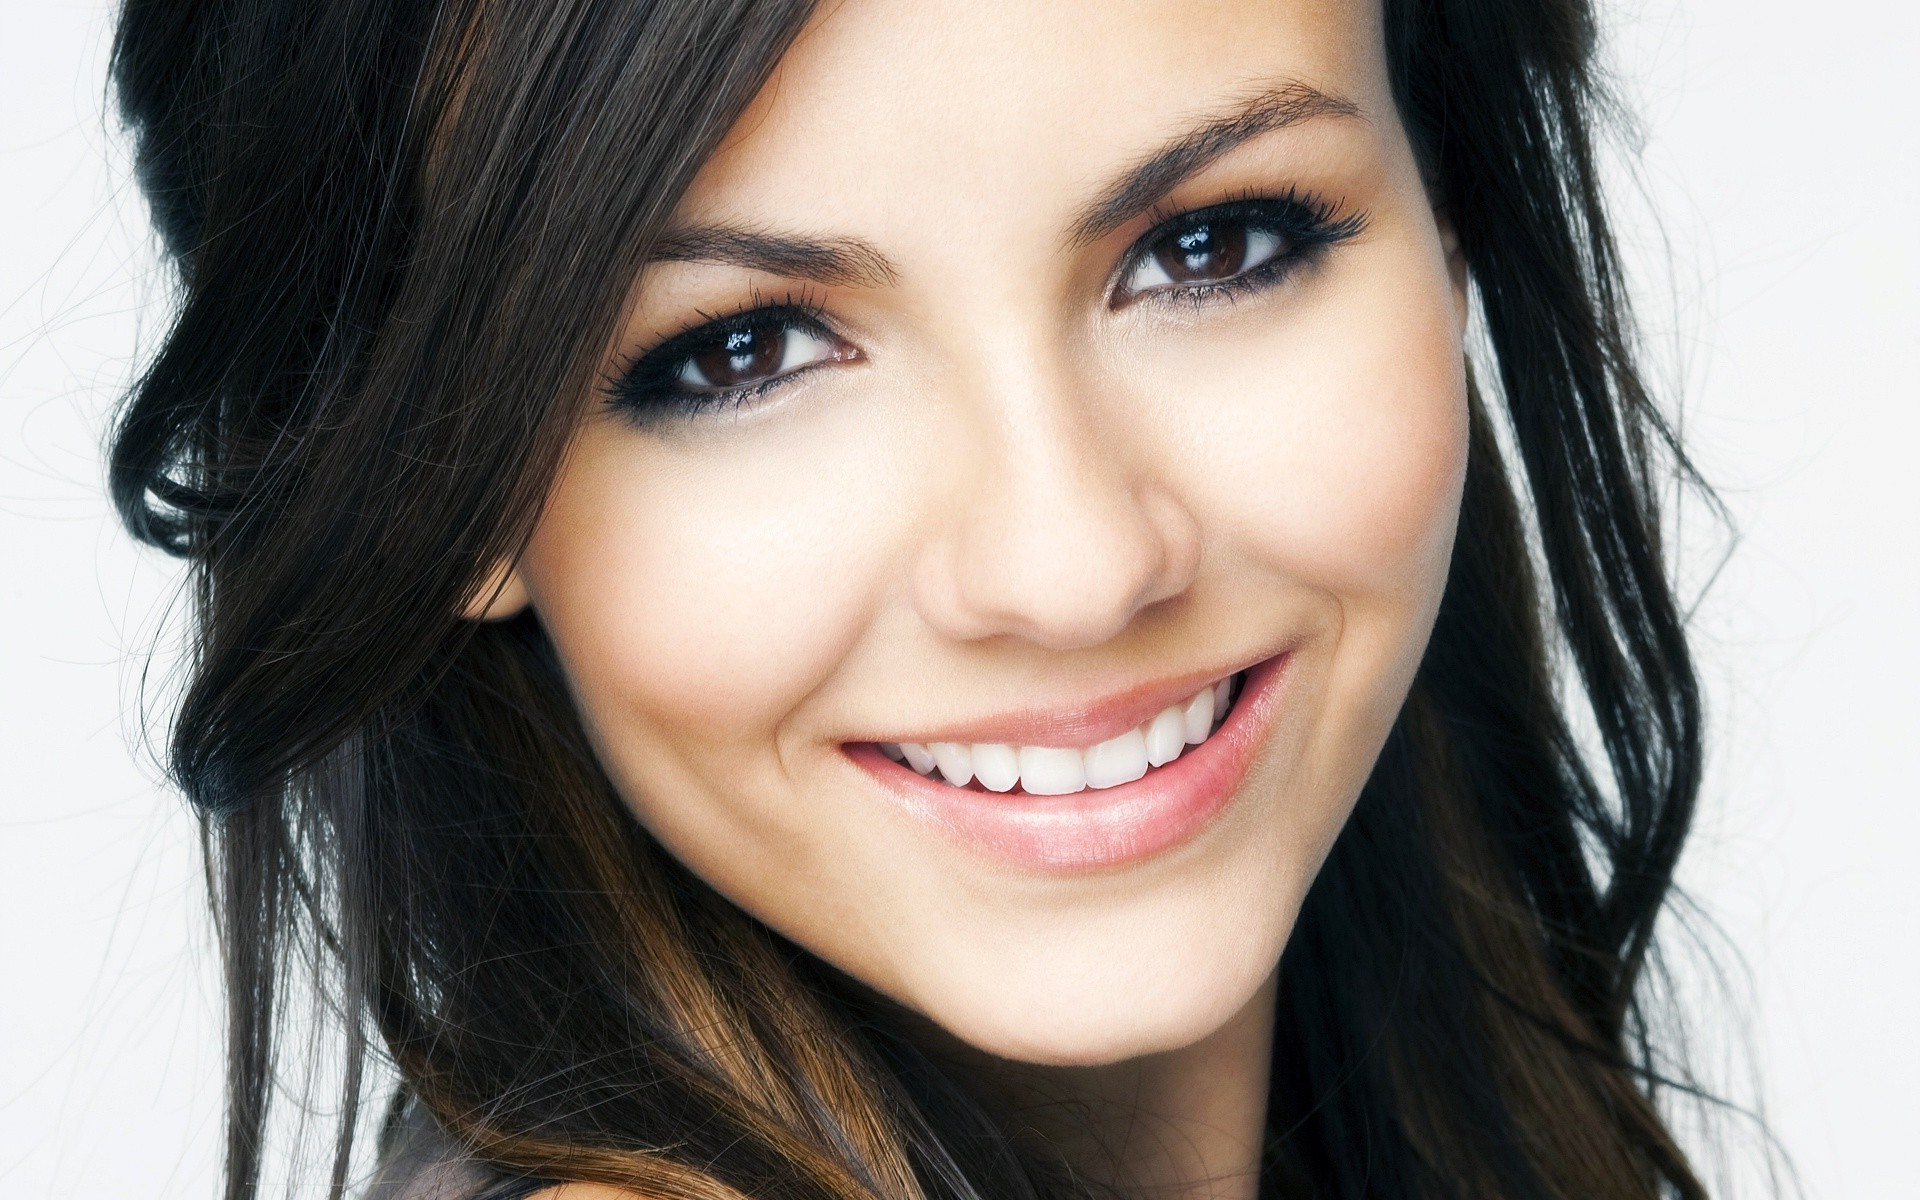 1000+ images about victoria justice on Pinterest | Victoria